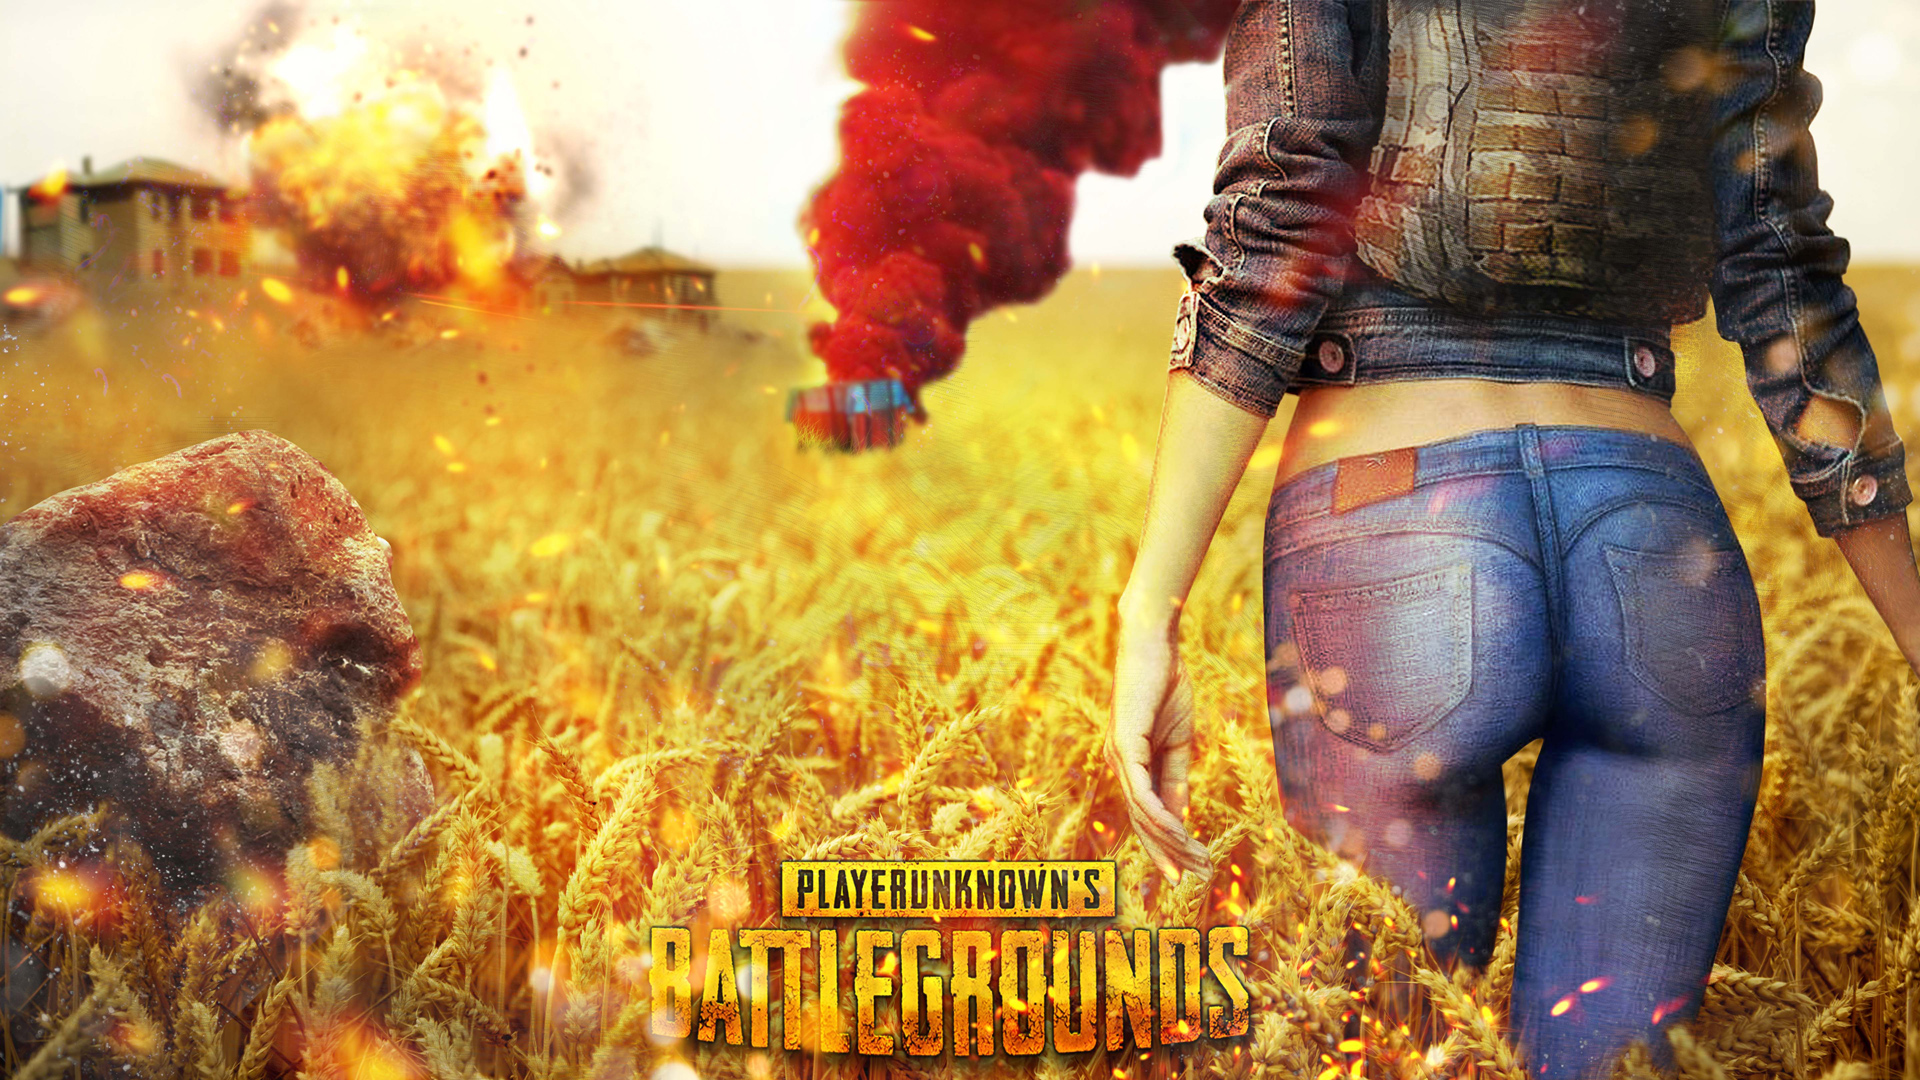 Hd 1080p Pubg Wallpapers Pubattlegrounds: 1920x1080 Playerunknowns Battlegrounds 1080P Laptop Full